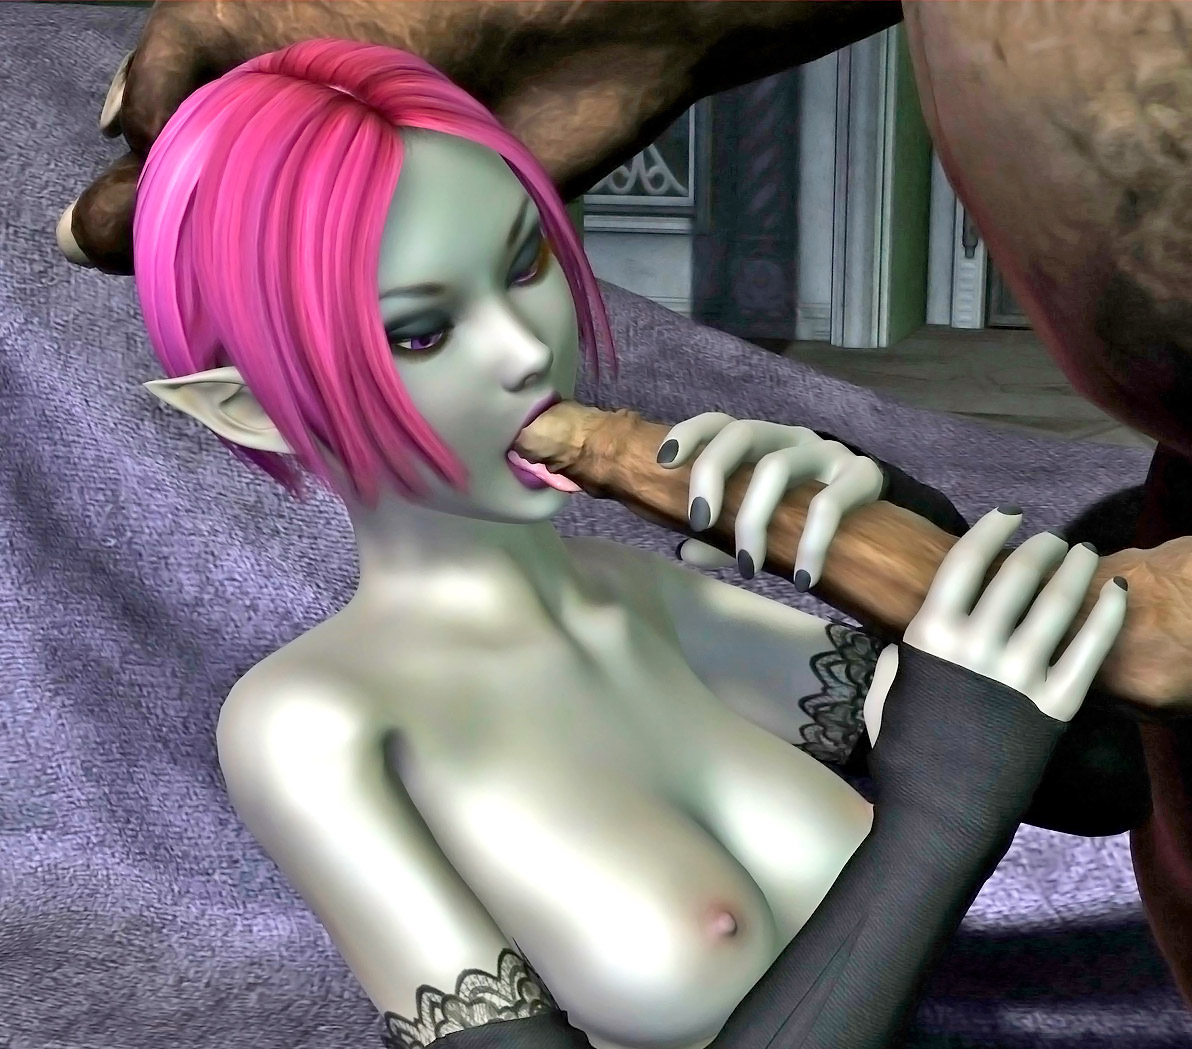 Elf princess porn 3gp naked tube